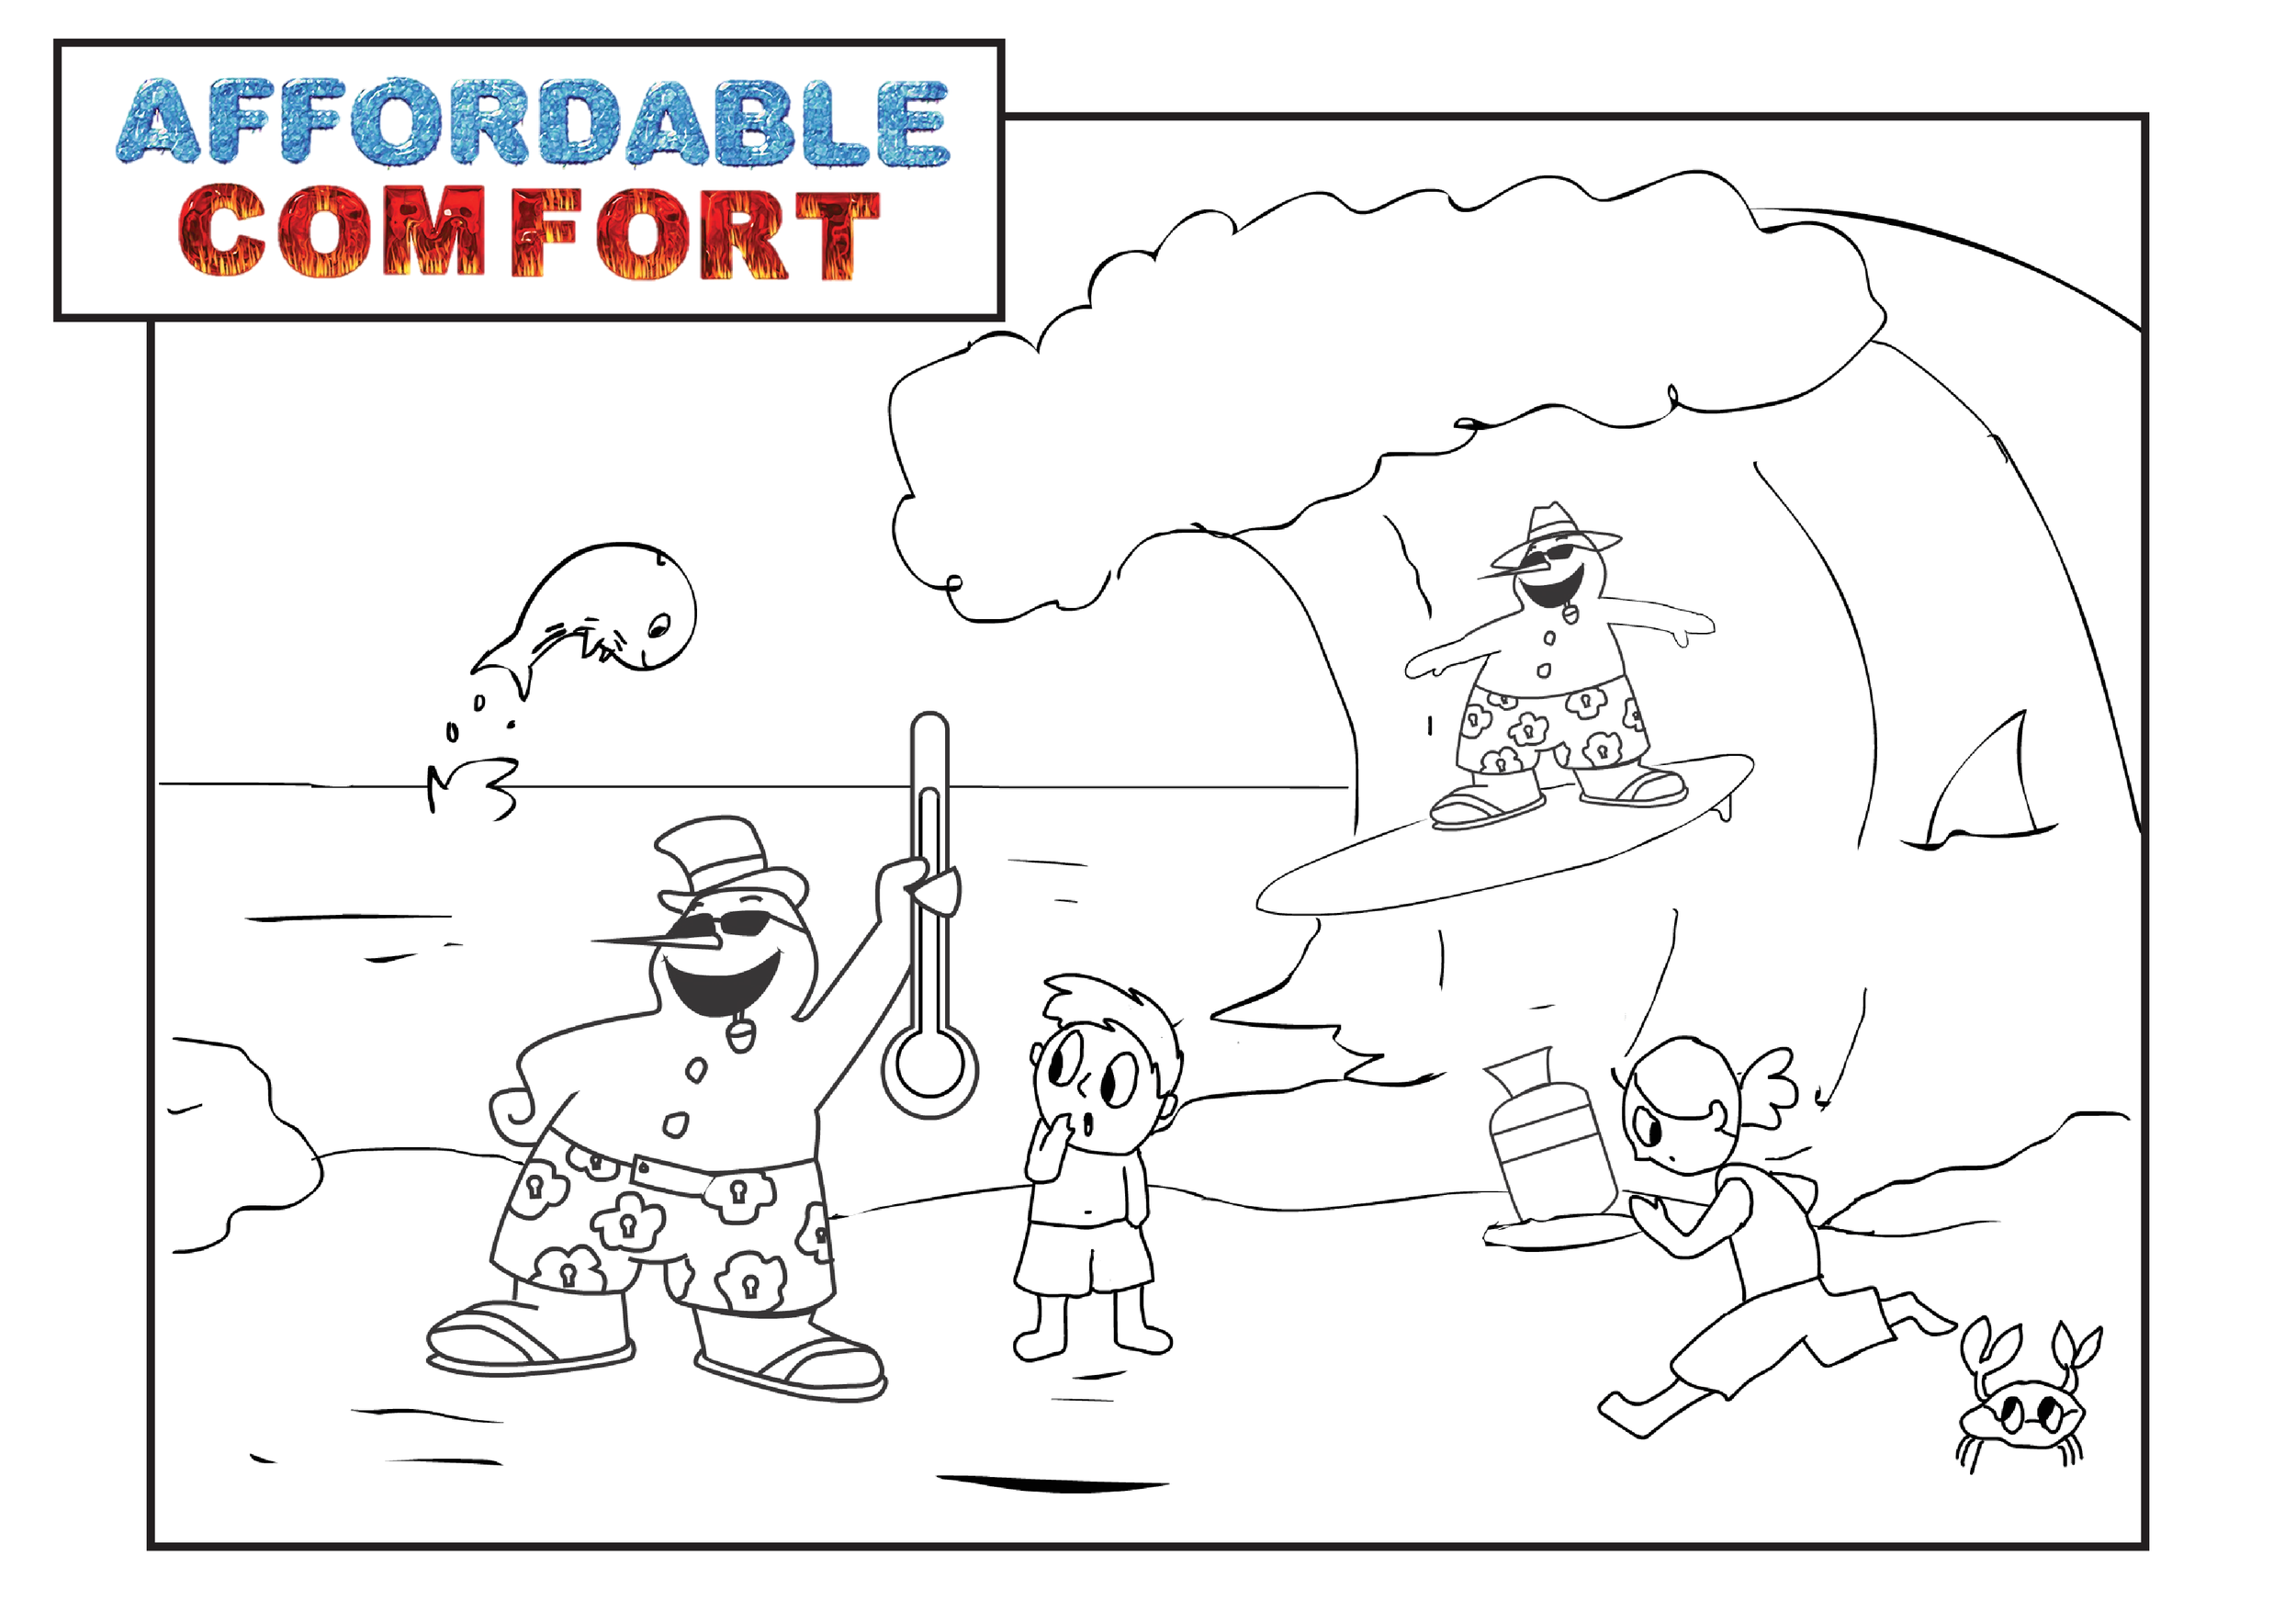 Affordable Comfort Coloring Contest-5.png